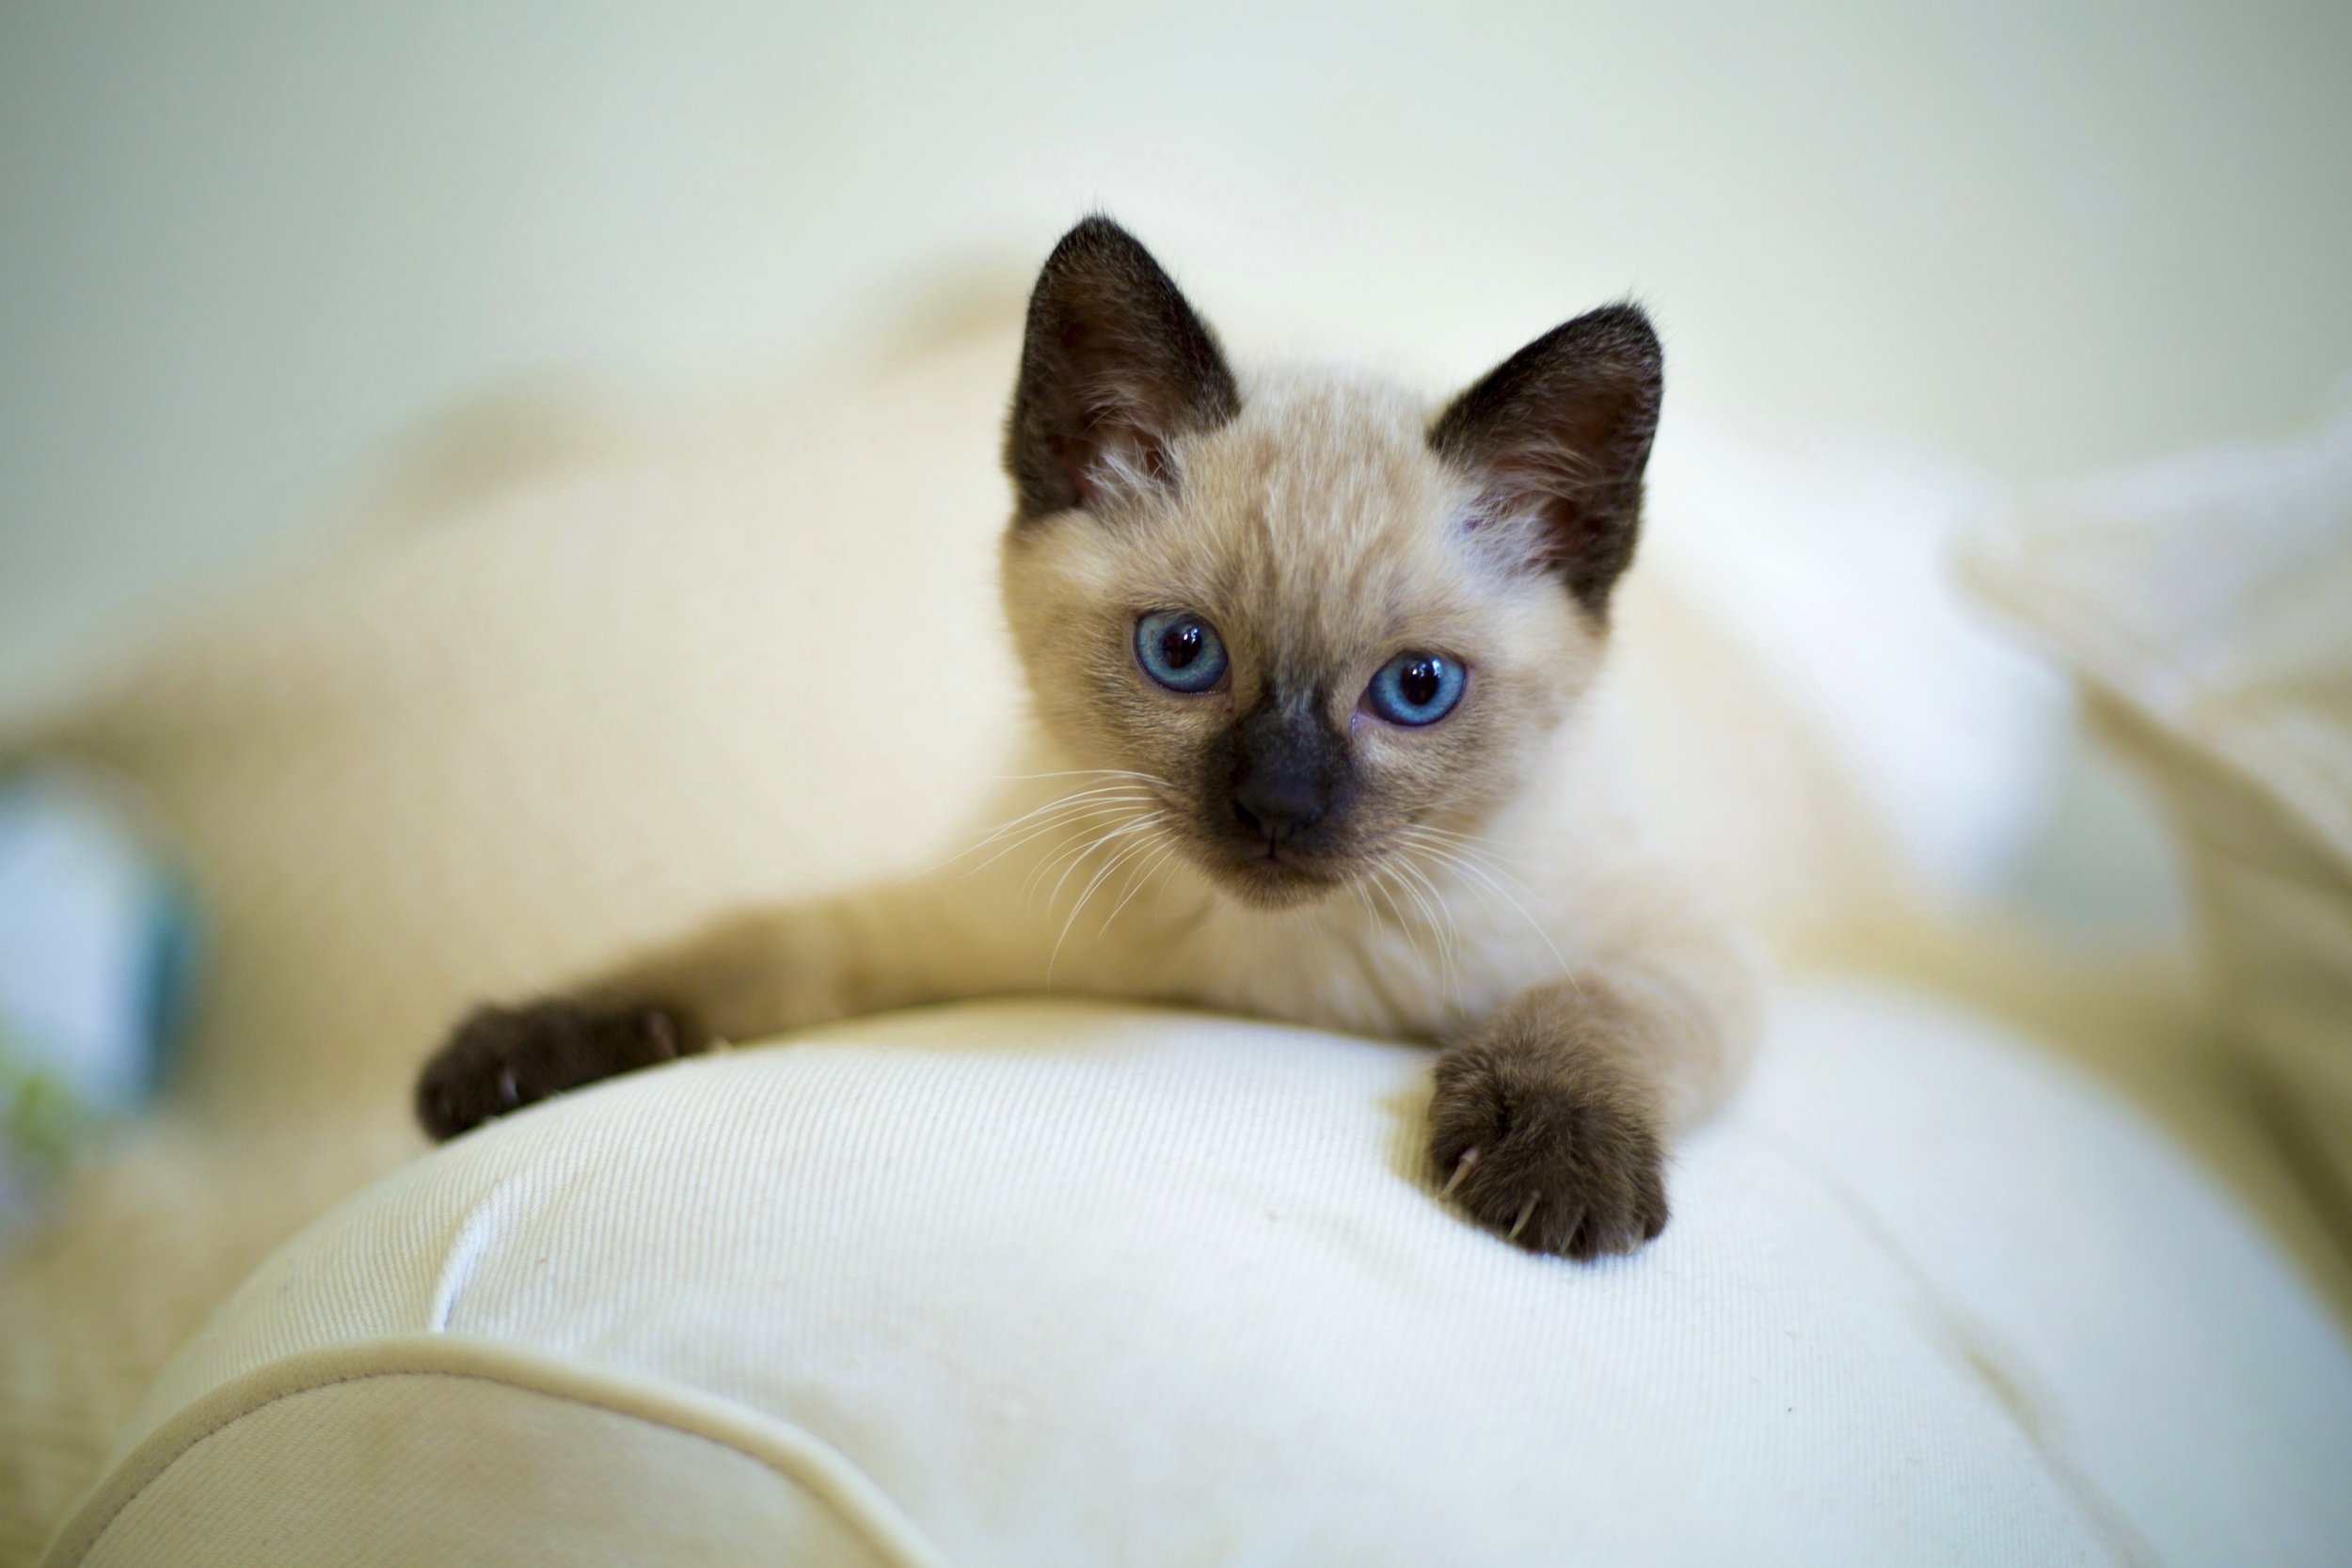 More than 700 kittens have found forever homes through our Kitten Caboose program!